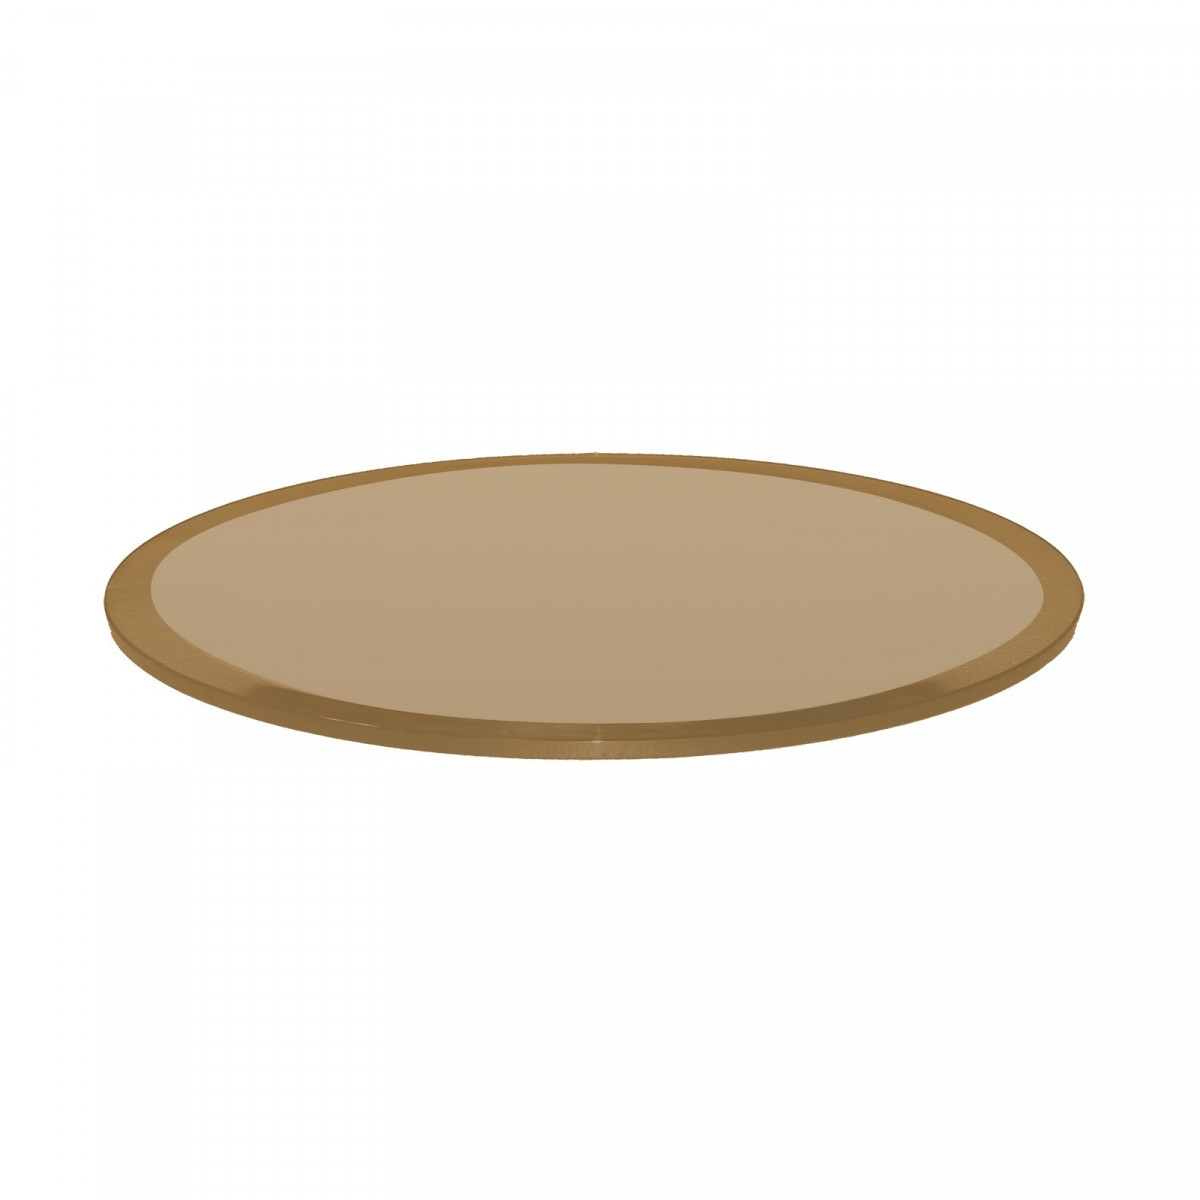 12 Inch Round Glass Table Top 1//2 Thick Tempered Beveled Edge by Fab Glass and Mirror